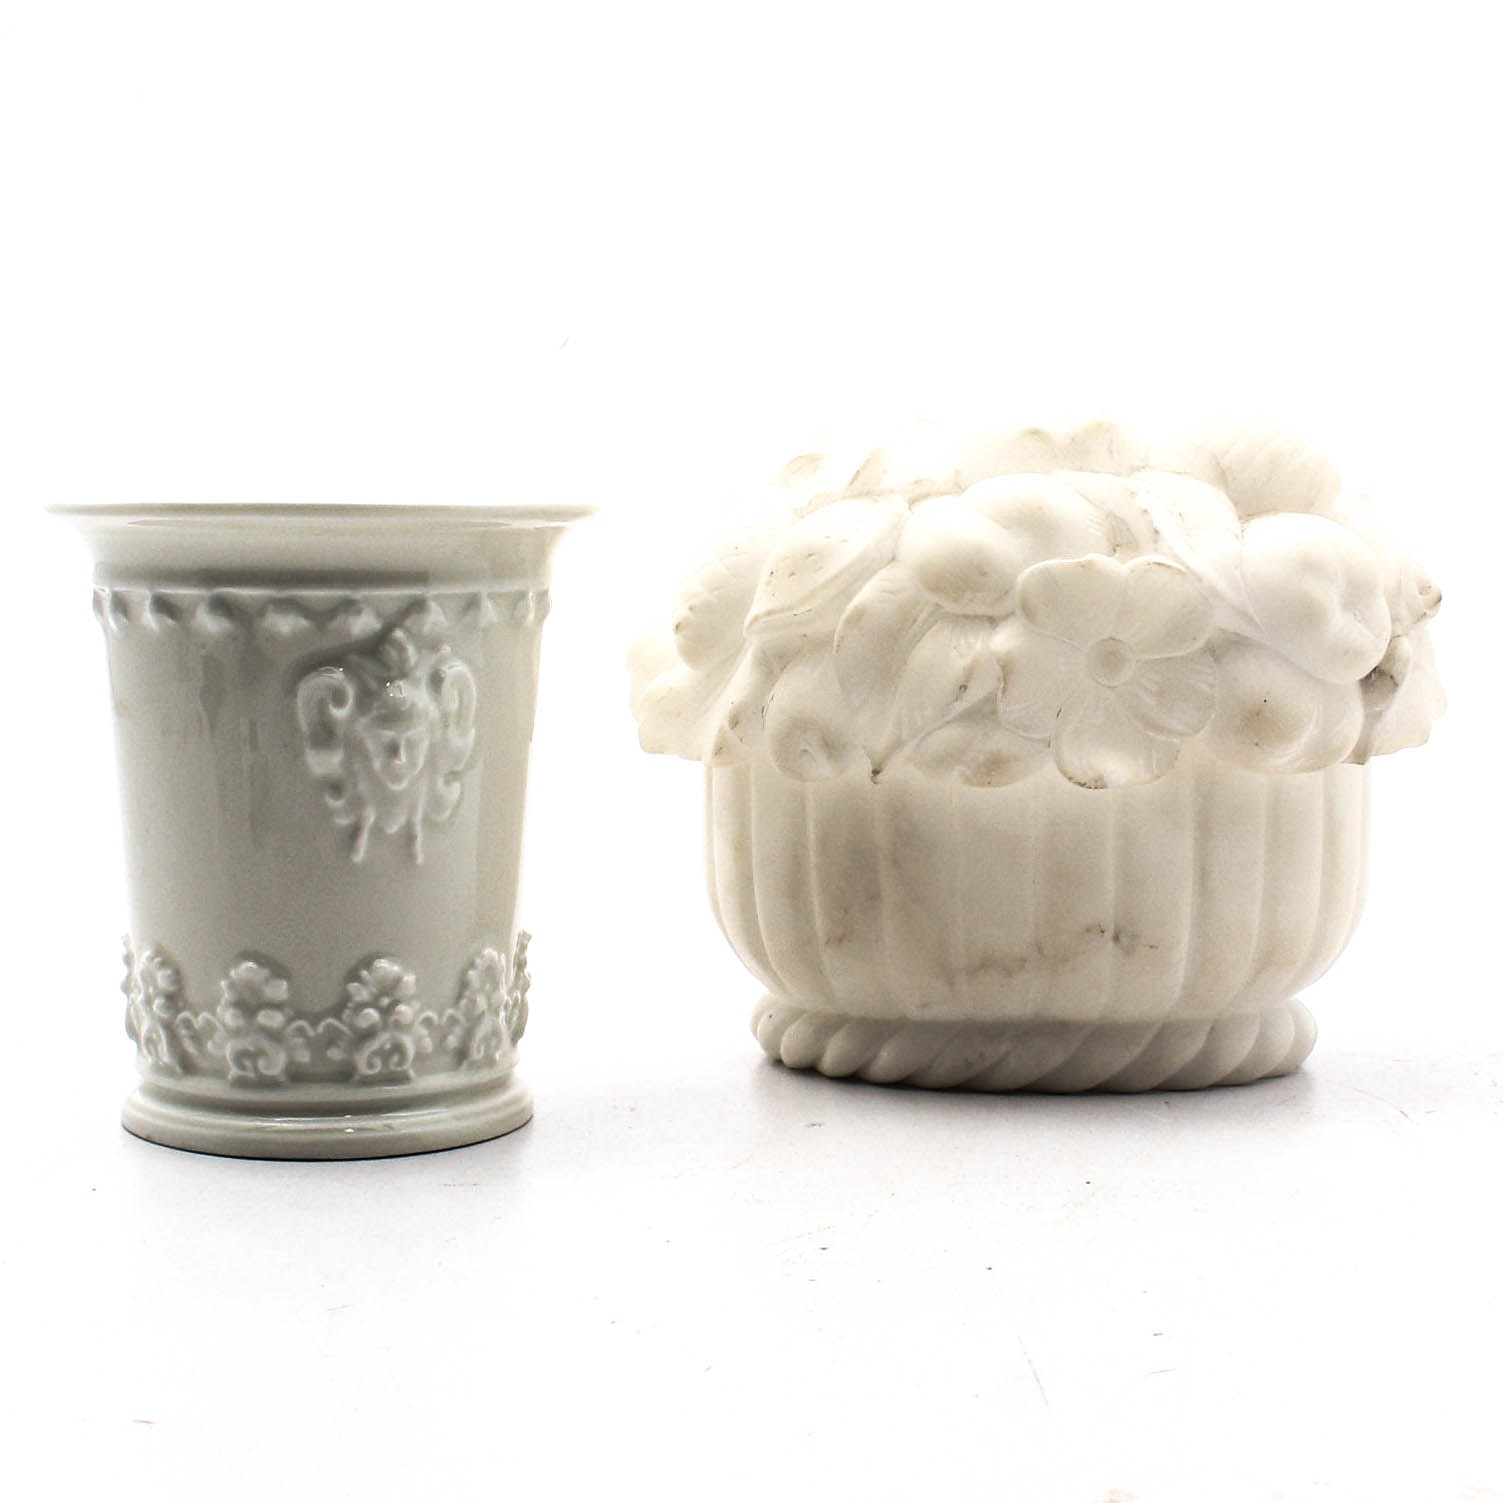 Alabaster Lidded Bowl and Limoges Reproduction Meissen Inspired Beaker